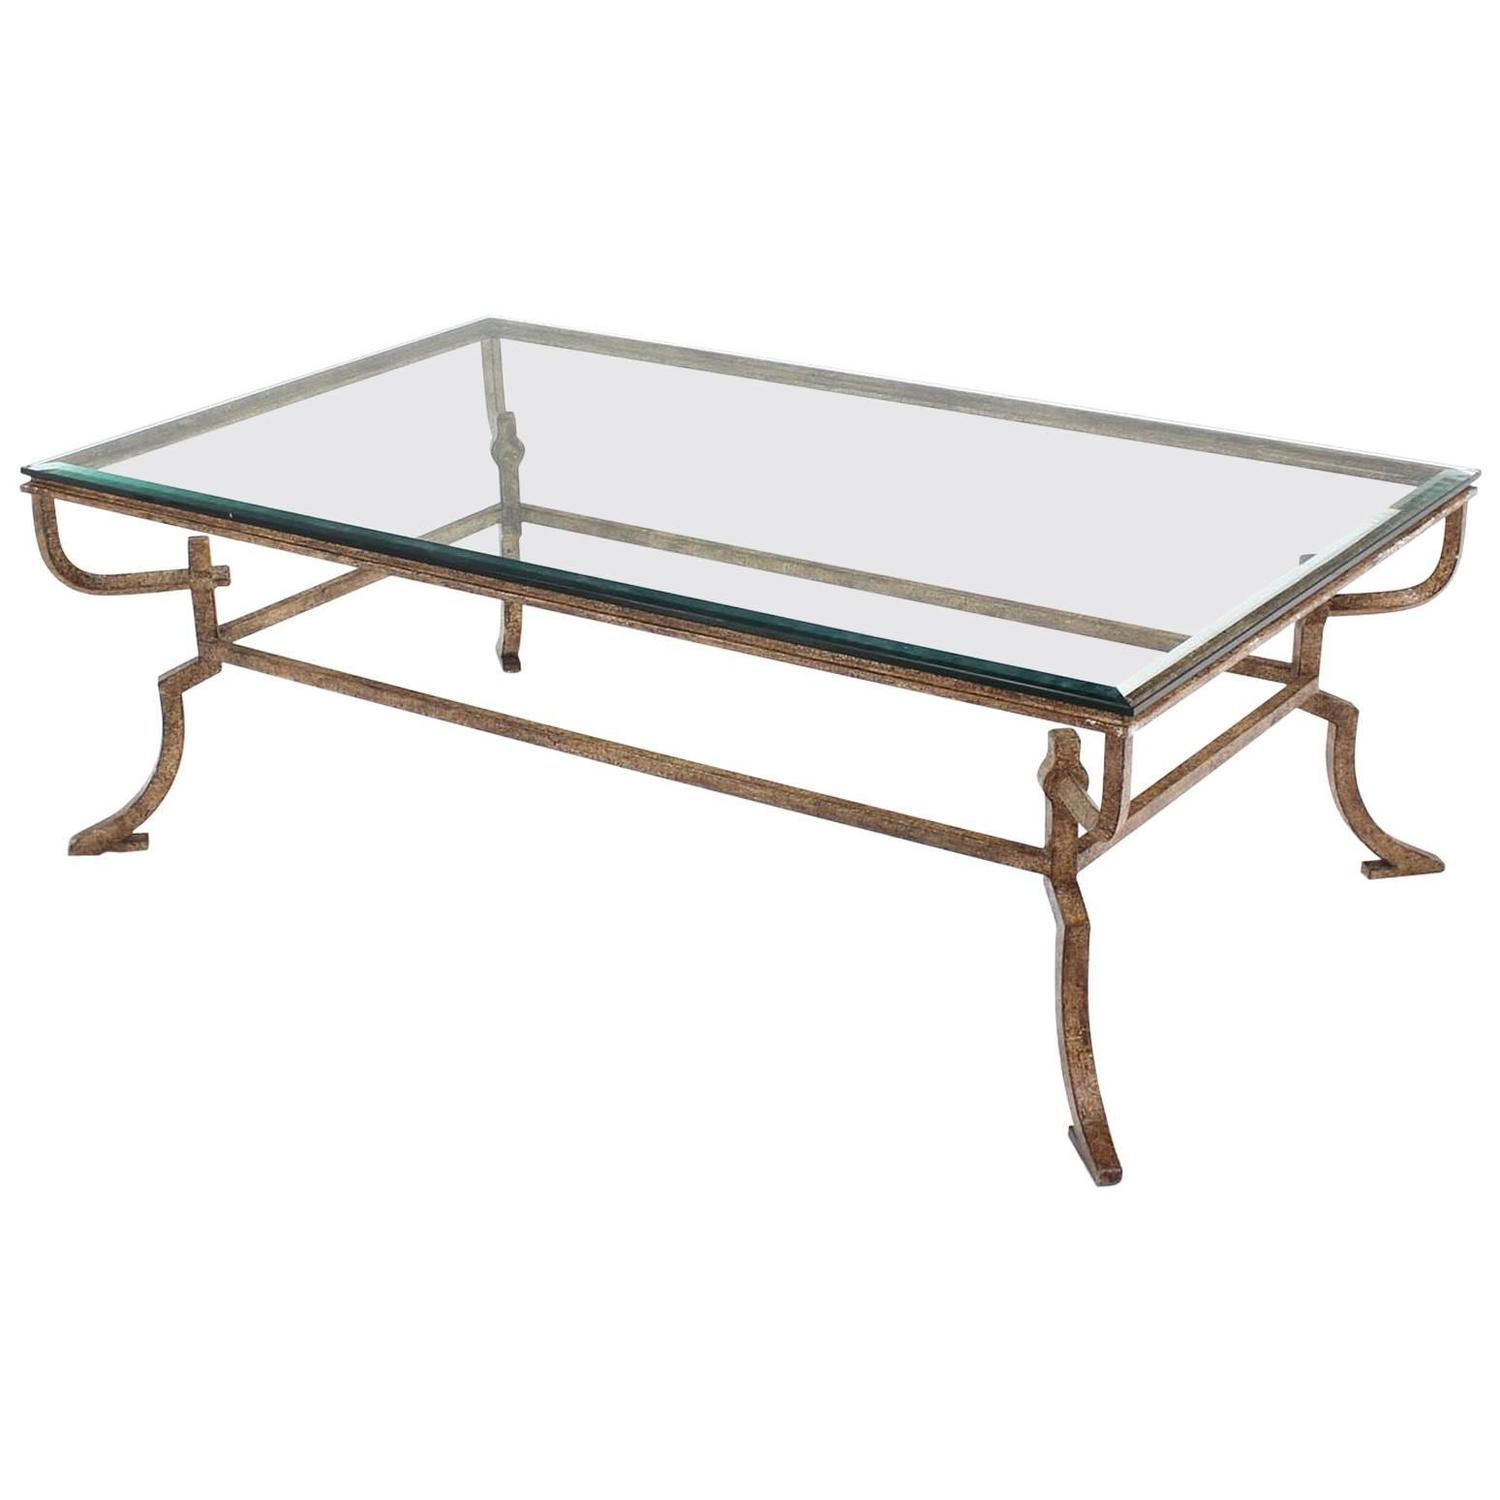 Heavy Wrought Iron Studio Work Base Glass Top Coffee Table For Sale At 1stdibs